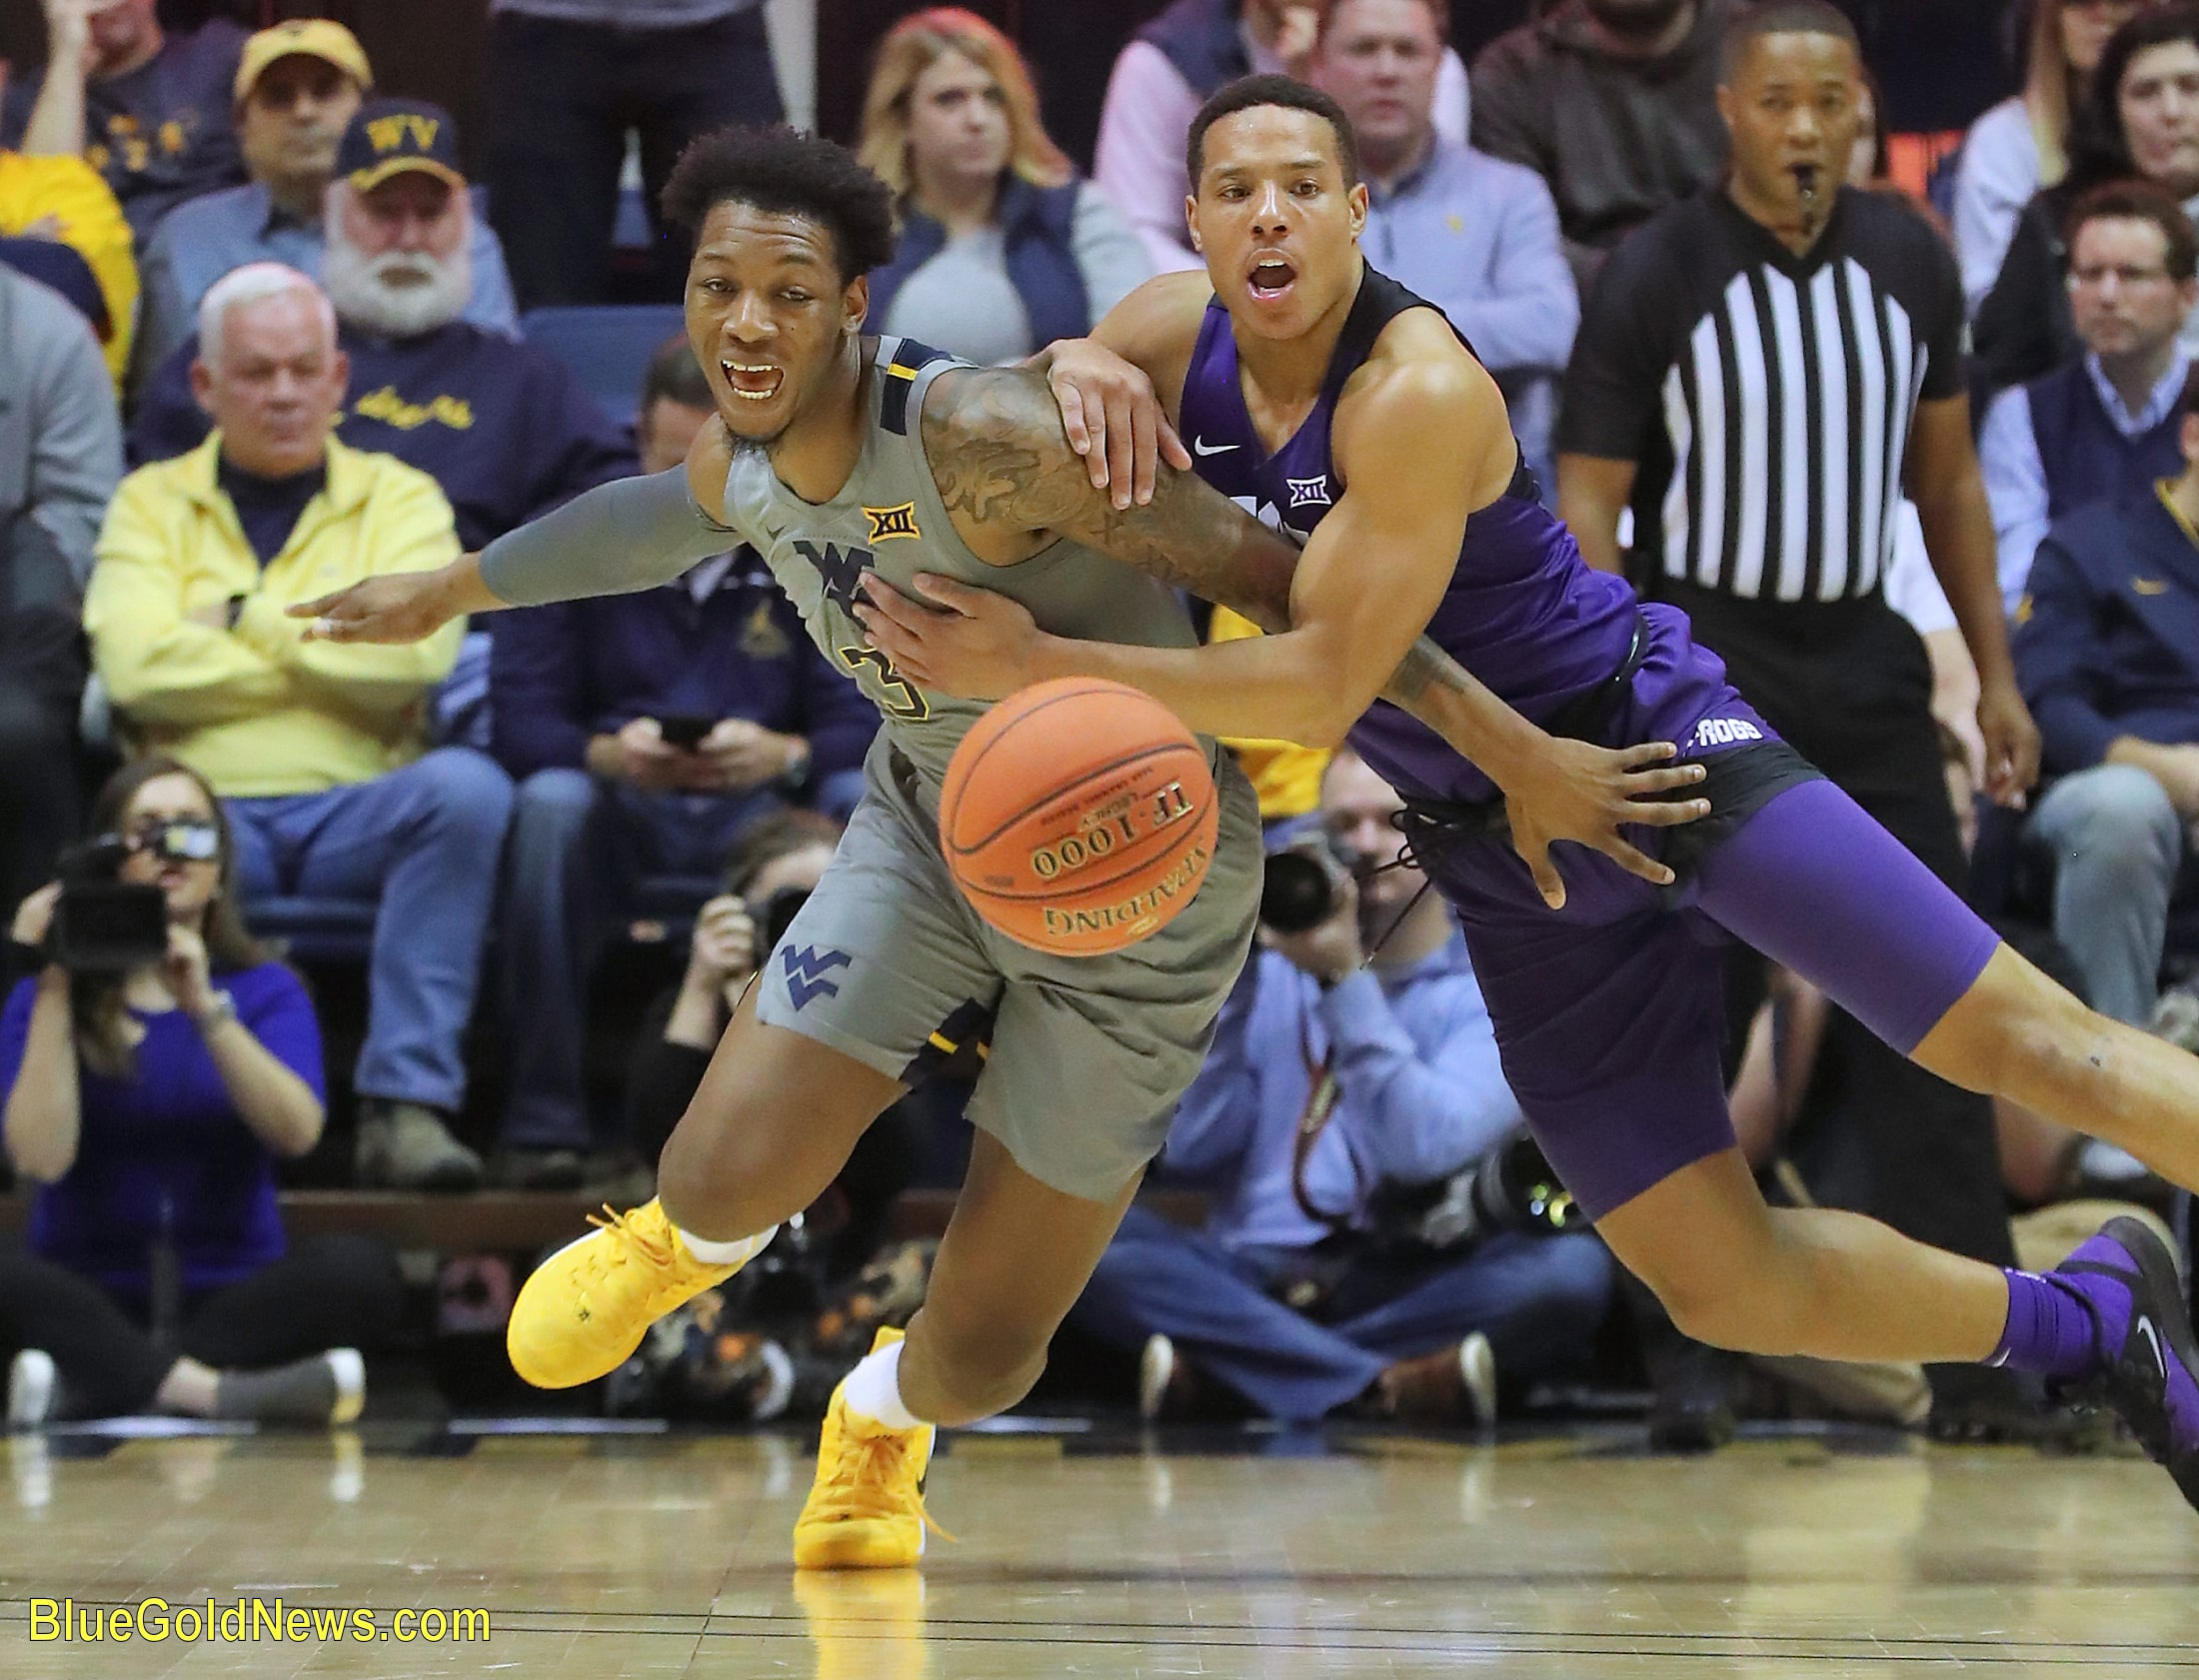 West Virginia's Gabe Osabuohien (3) is held by TCU's Desmond Bane while chasing a loose ball